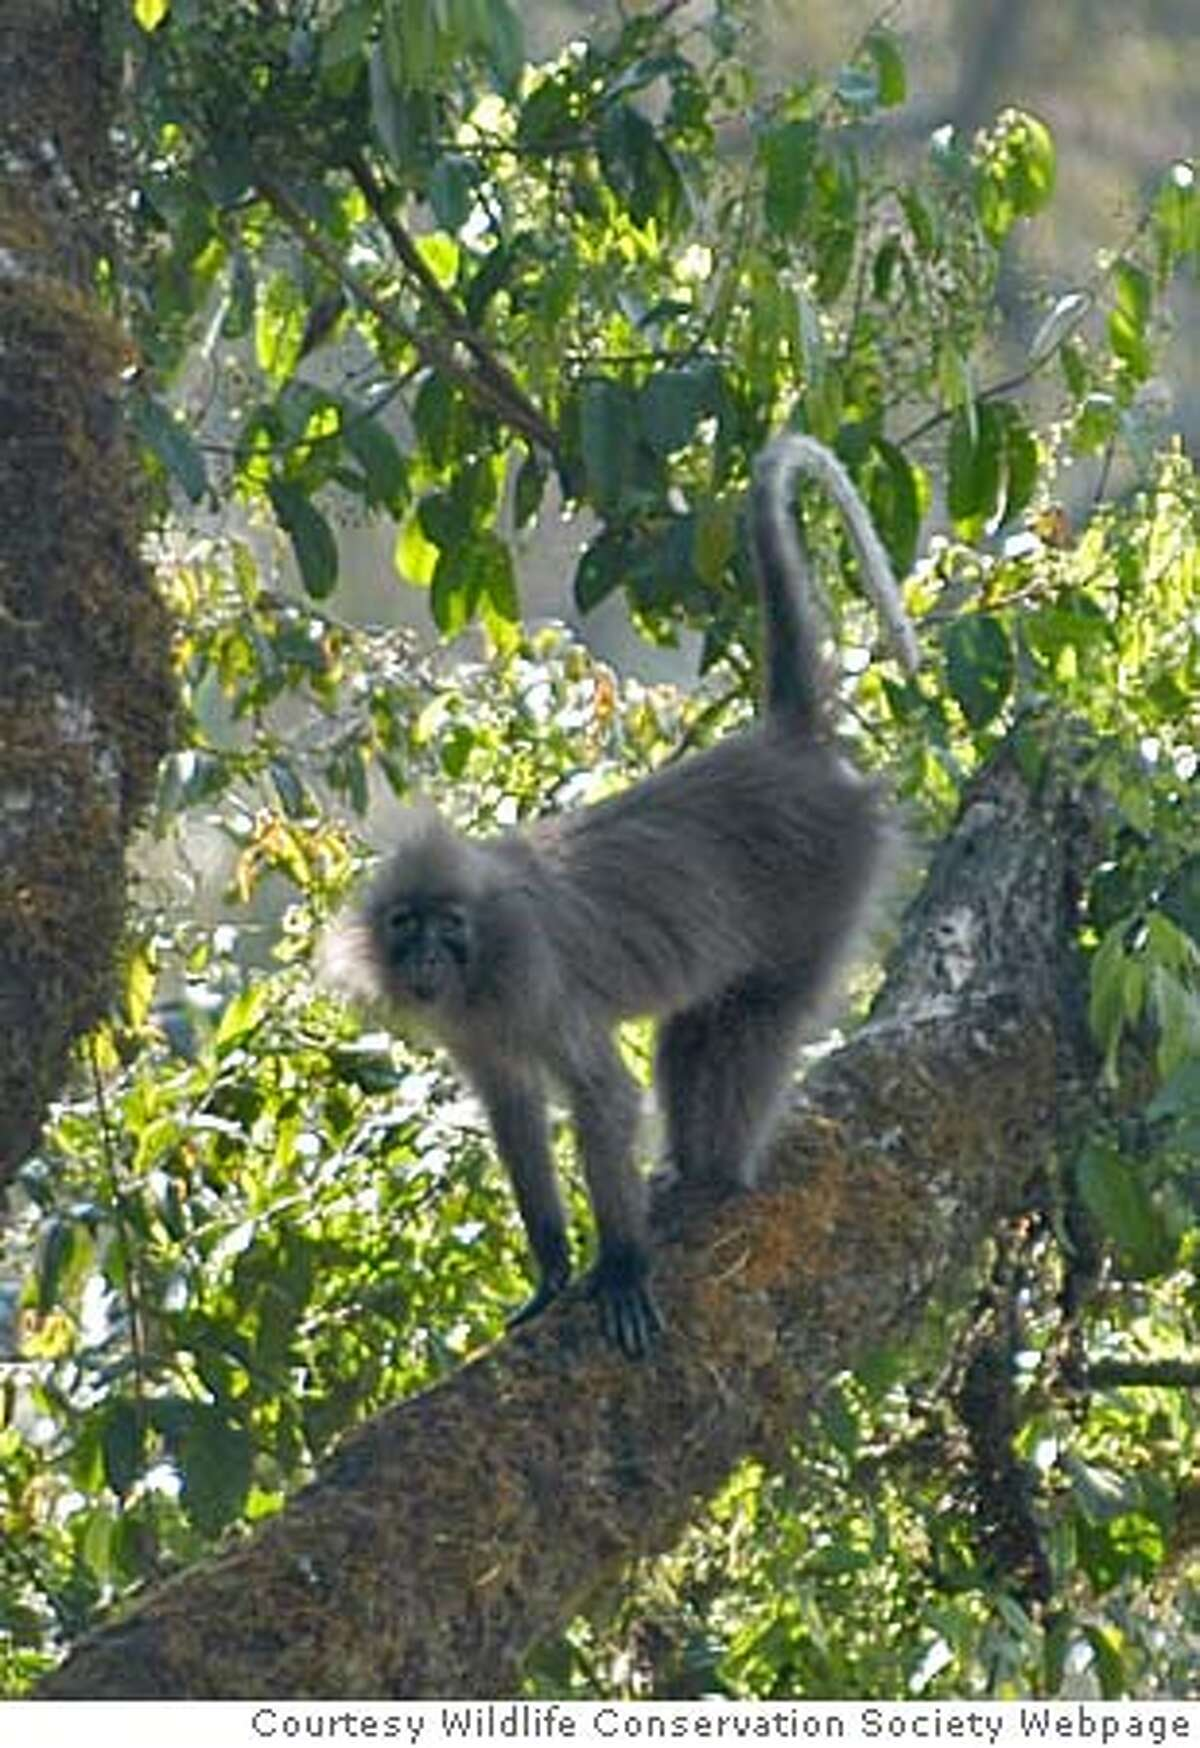 monkey23_ph2.JPG Named the �Highland Mangabey� (Lophocebus kipunji), this long-haired forest primate was first discovered by biologists from the Wildlife Conservation Society (WCS) on the flanks of the 10,000 ft (2961 m) volcano Mt. Rungwe and in the adjoining Kitulo National Park. Courtesy Wildlife Conservation Society Webpage